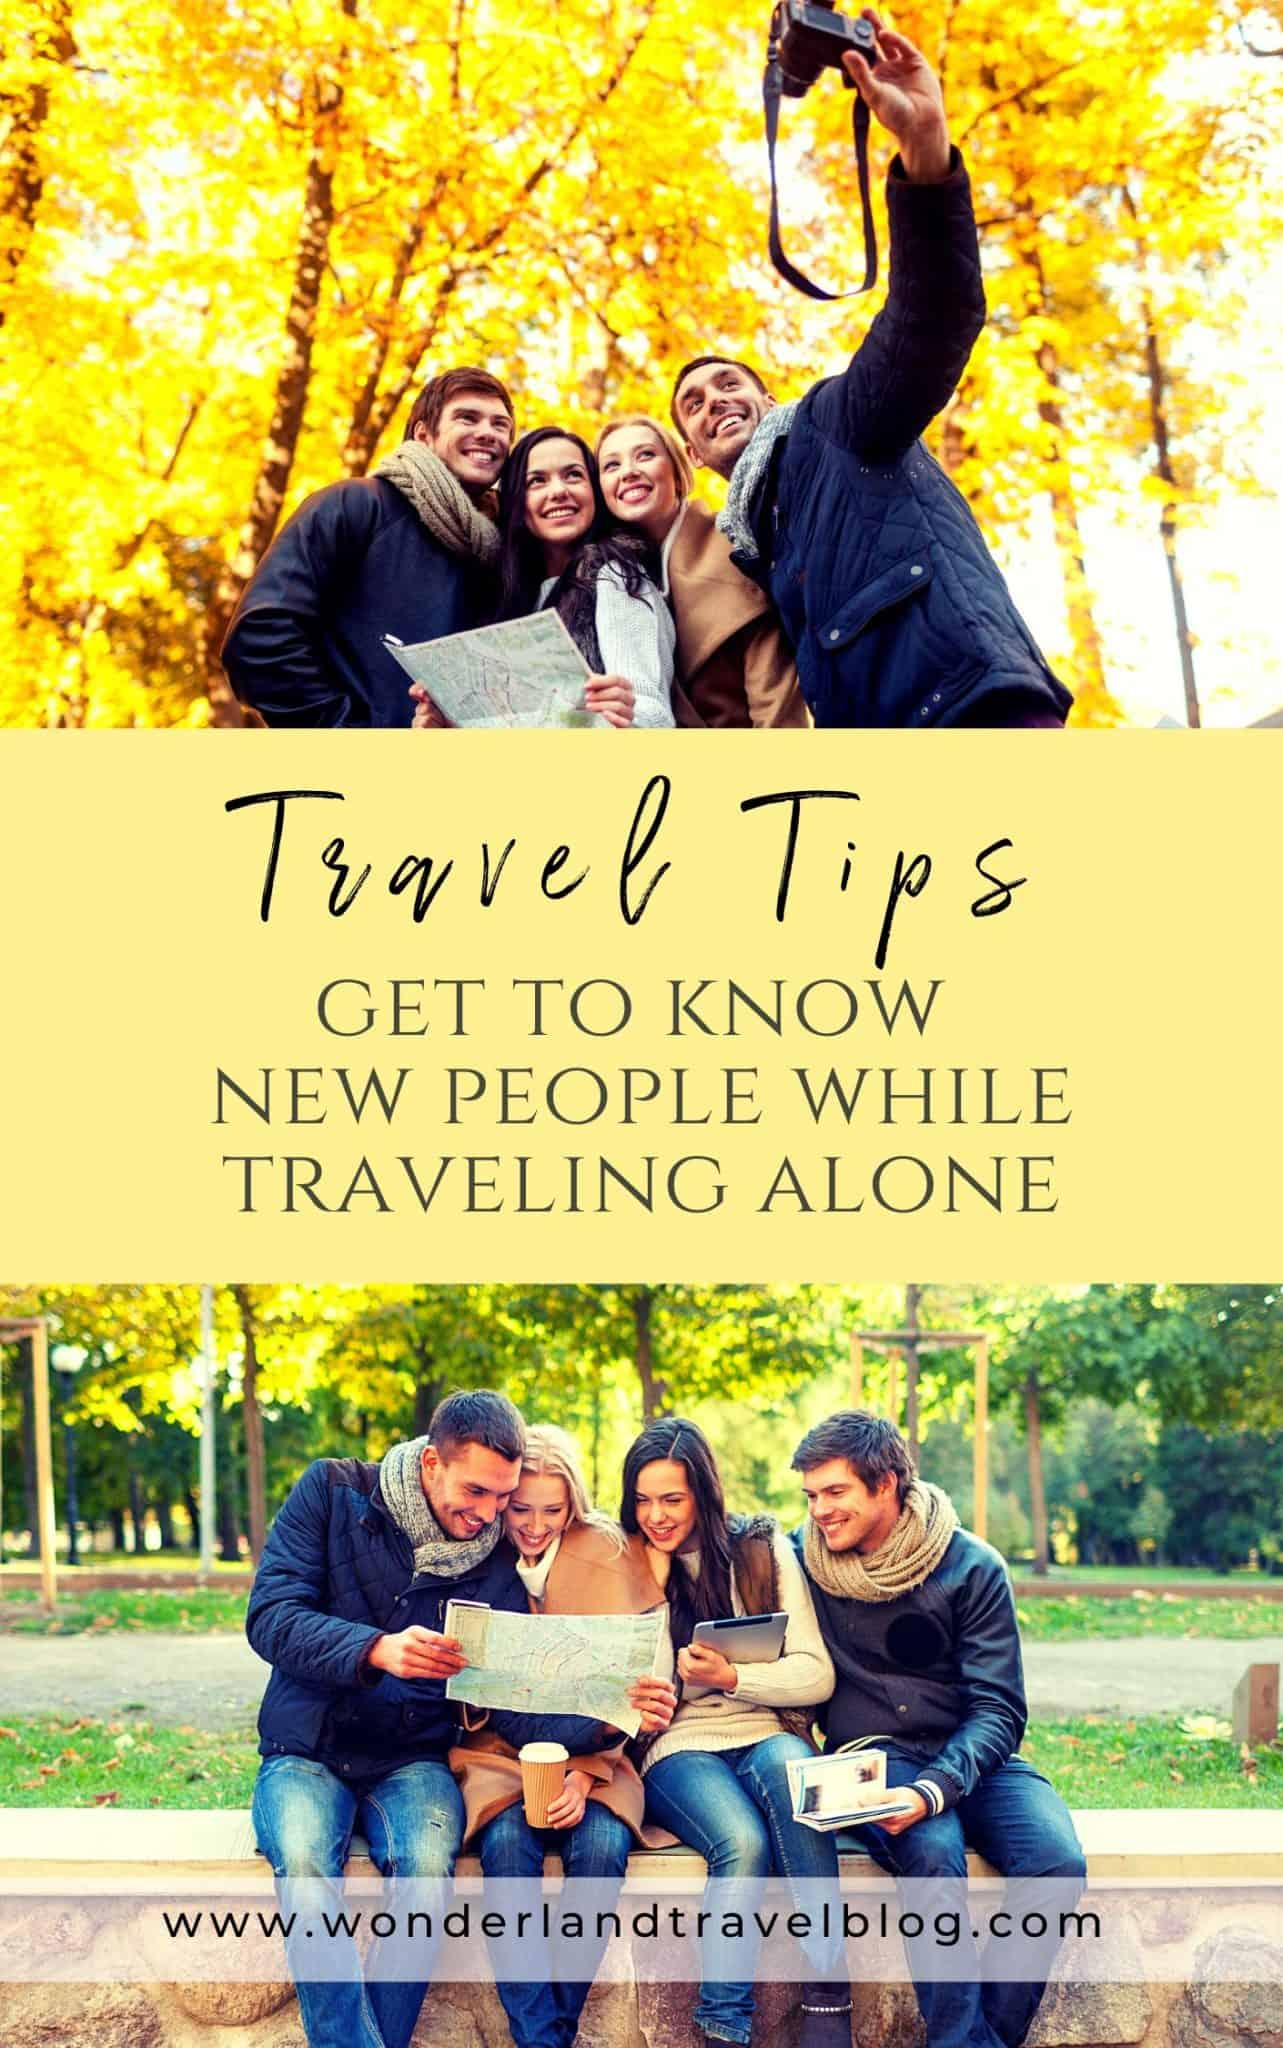 Get to know new people while traveling alone